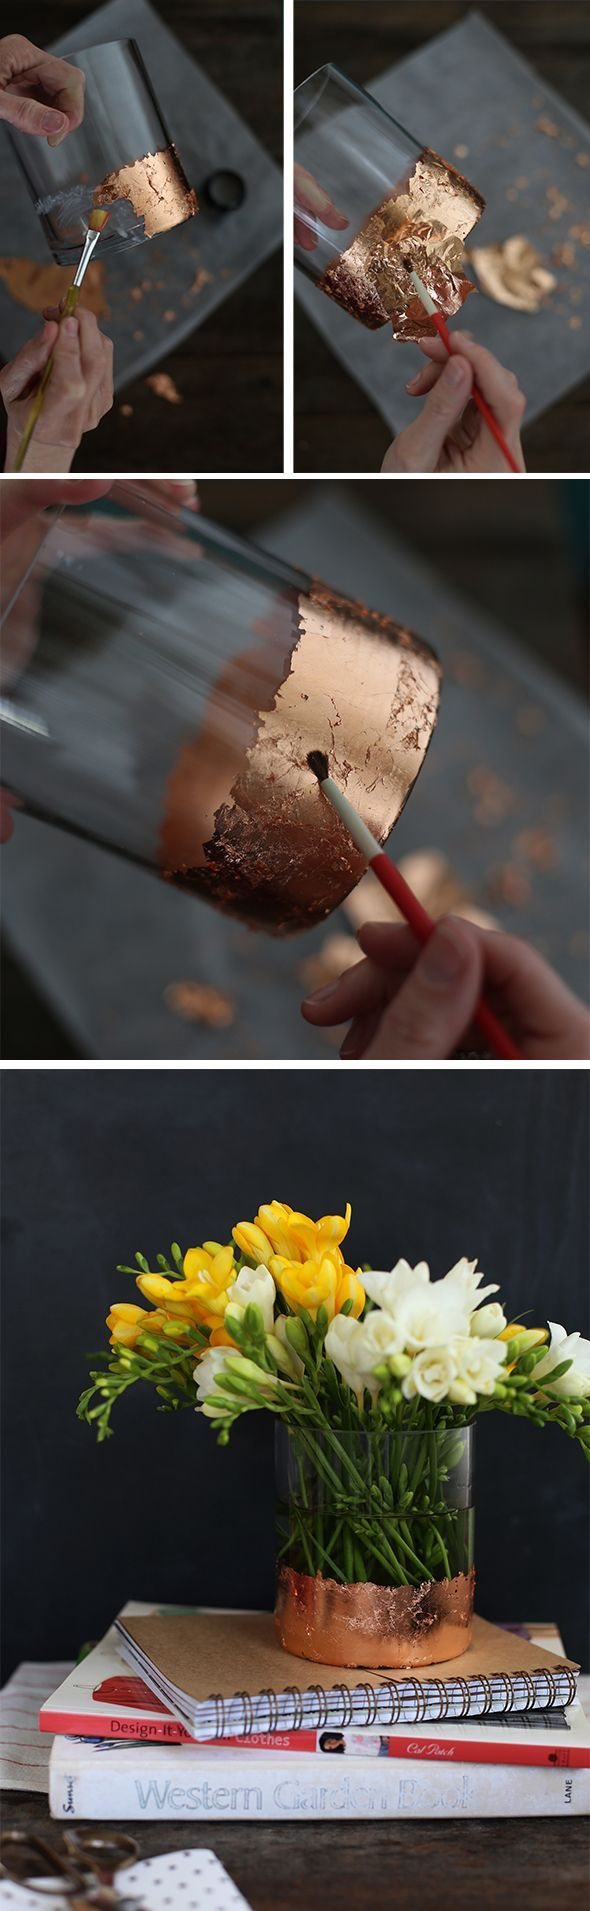 DIY Gold Leaf Vase - this would be perfect for the vases i used for party decorations